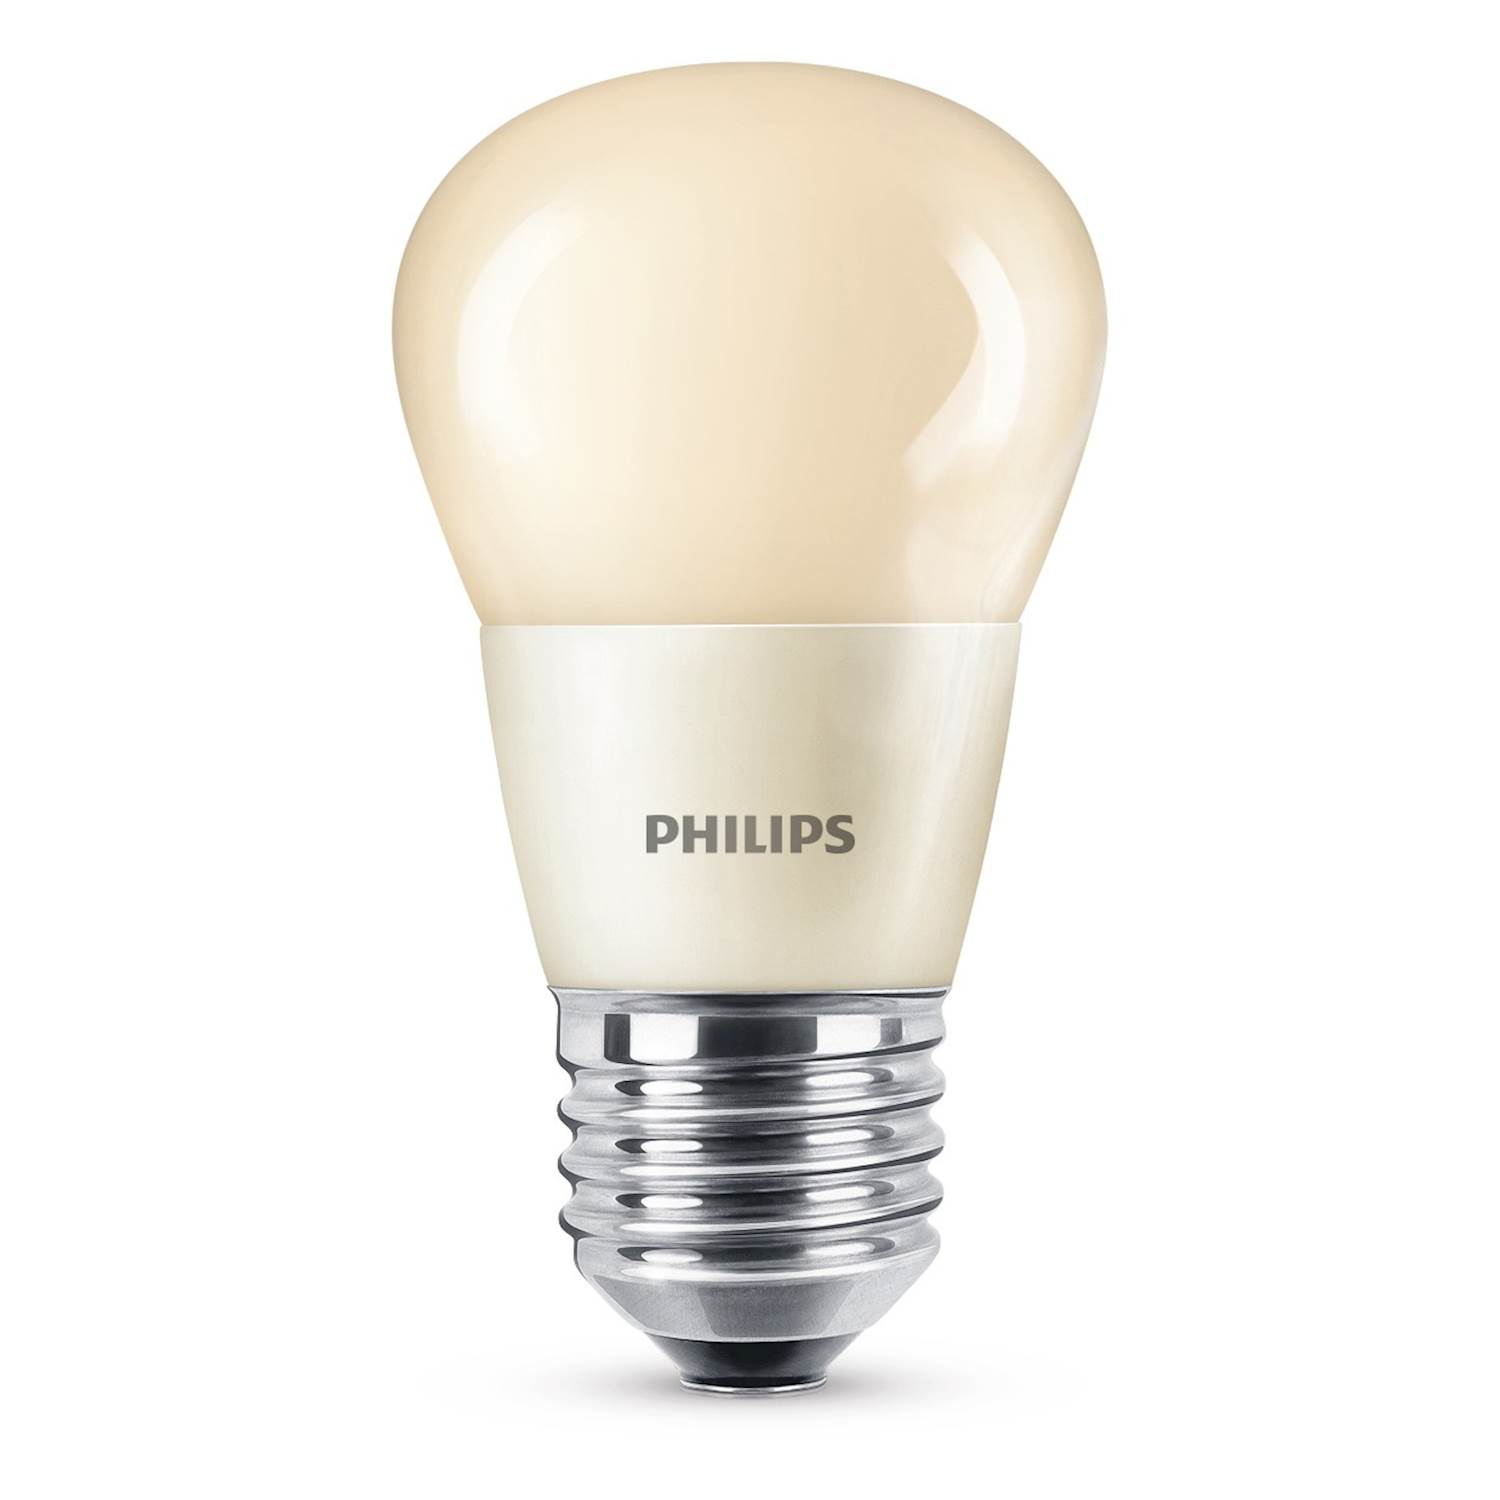 Philips LED KLOT 4W FLAME E27 FR D